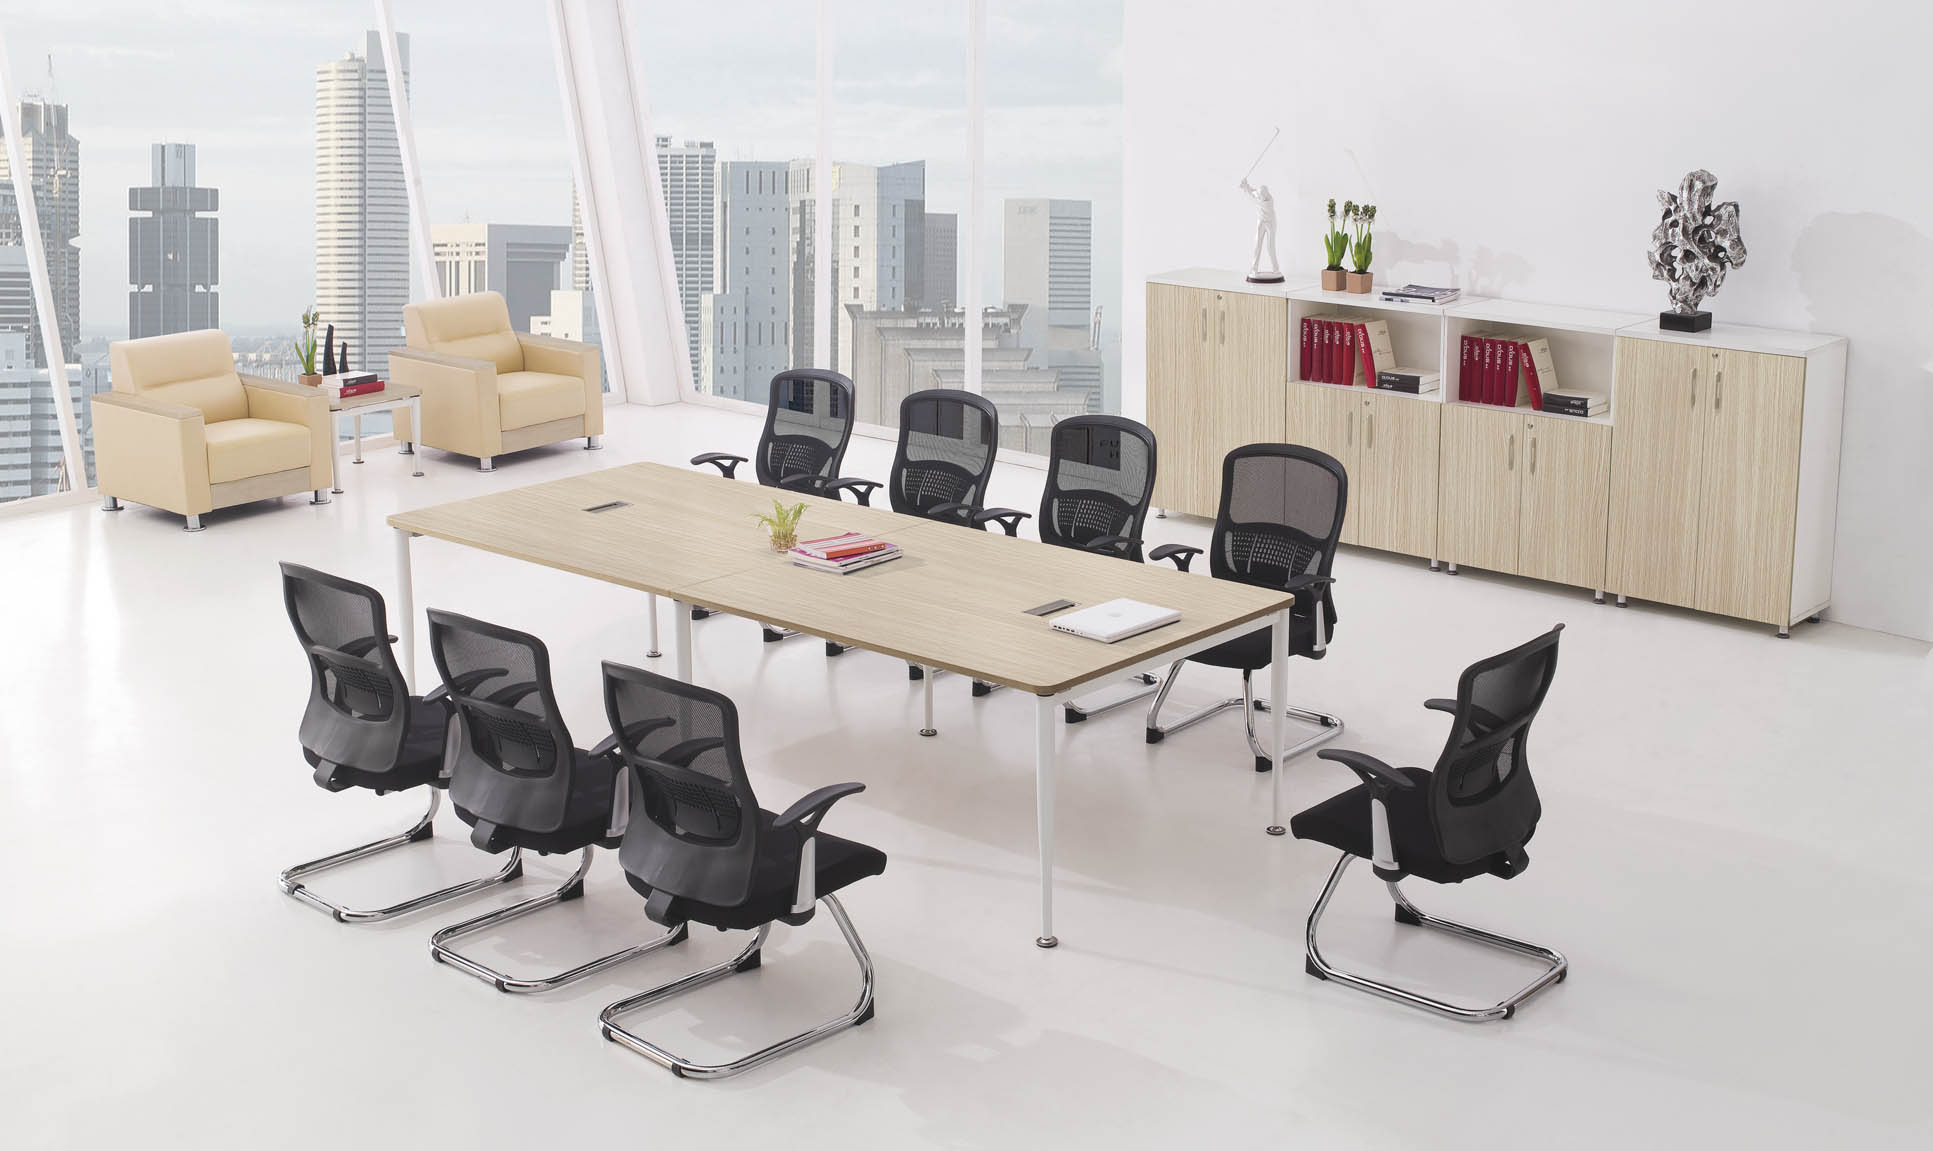 Yi ping large and small conference table long conference table minimalist modern conference table conference table training table negotiating table stylish simplicity